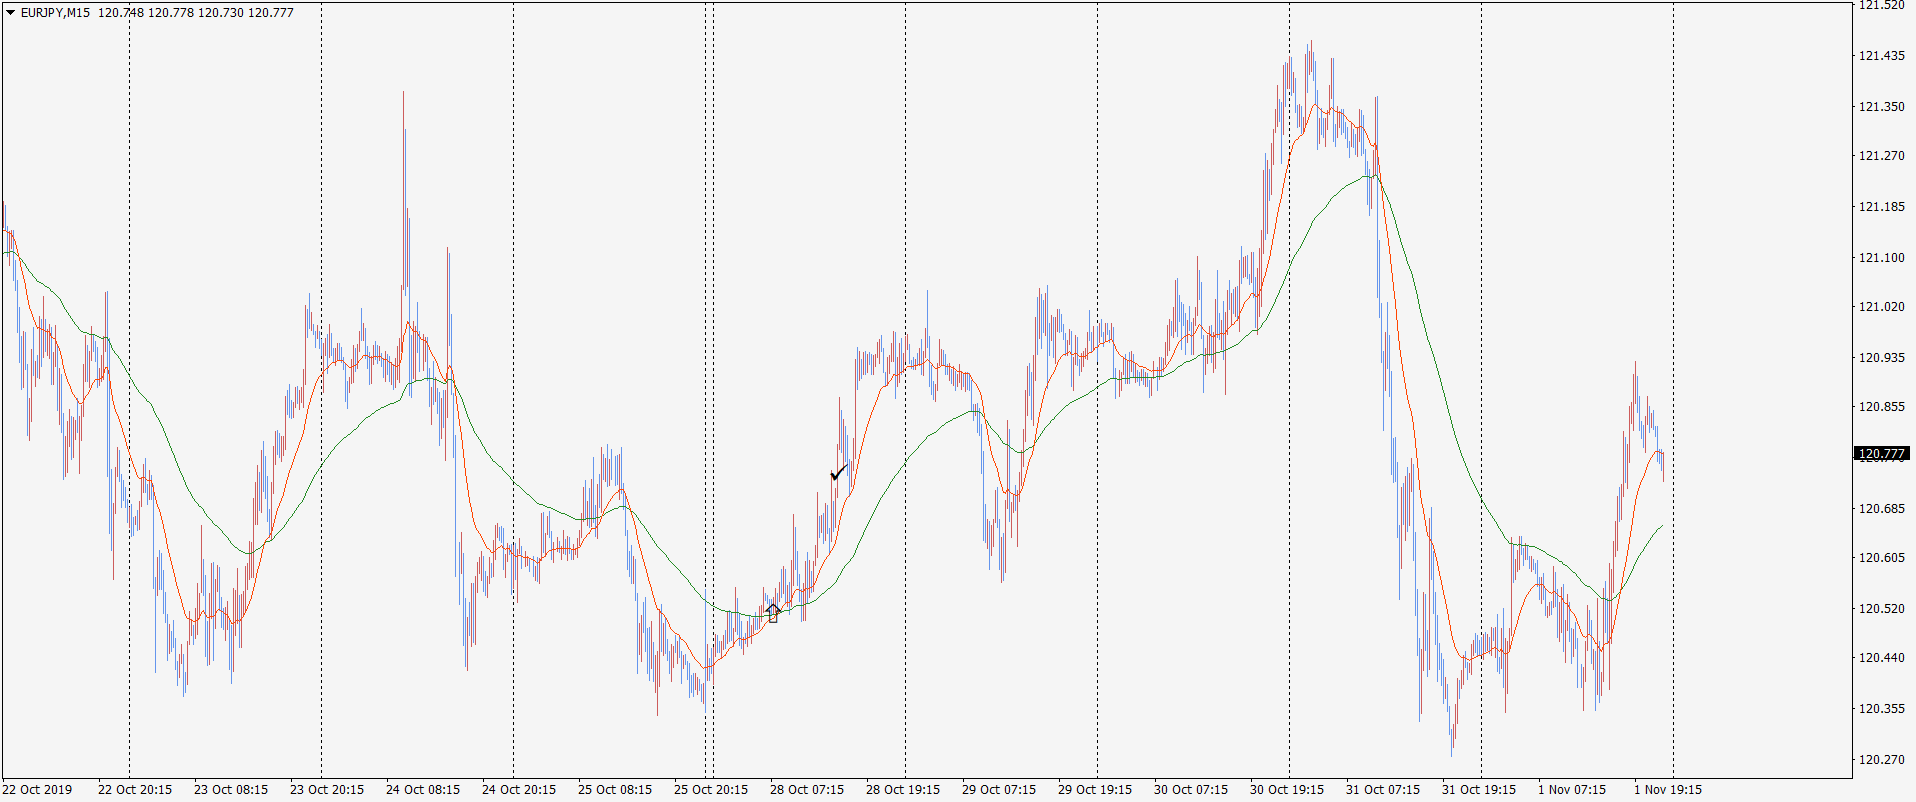 19-11-02-eurjpy-m15-tradexfin-limited.png